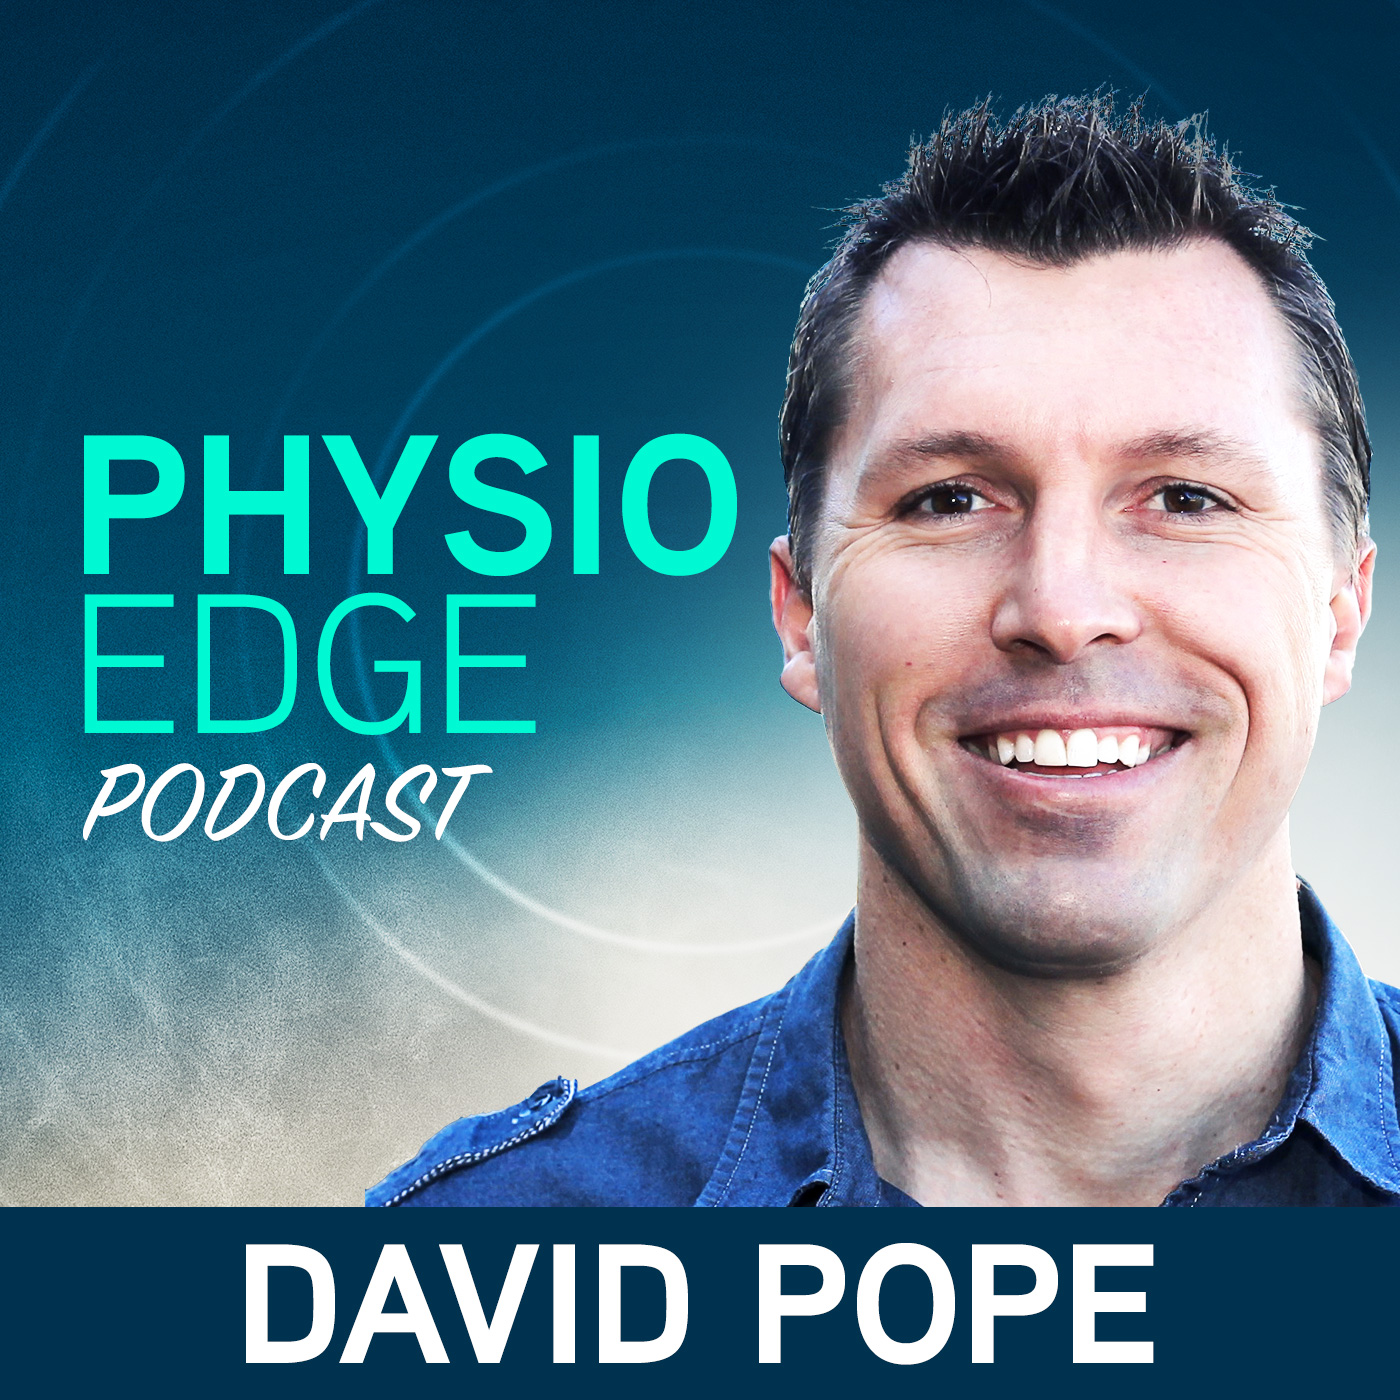 Physio Edge podcast